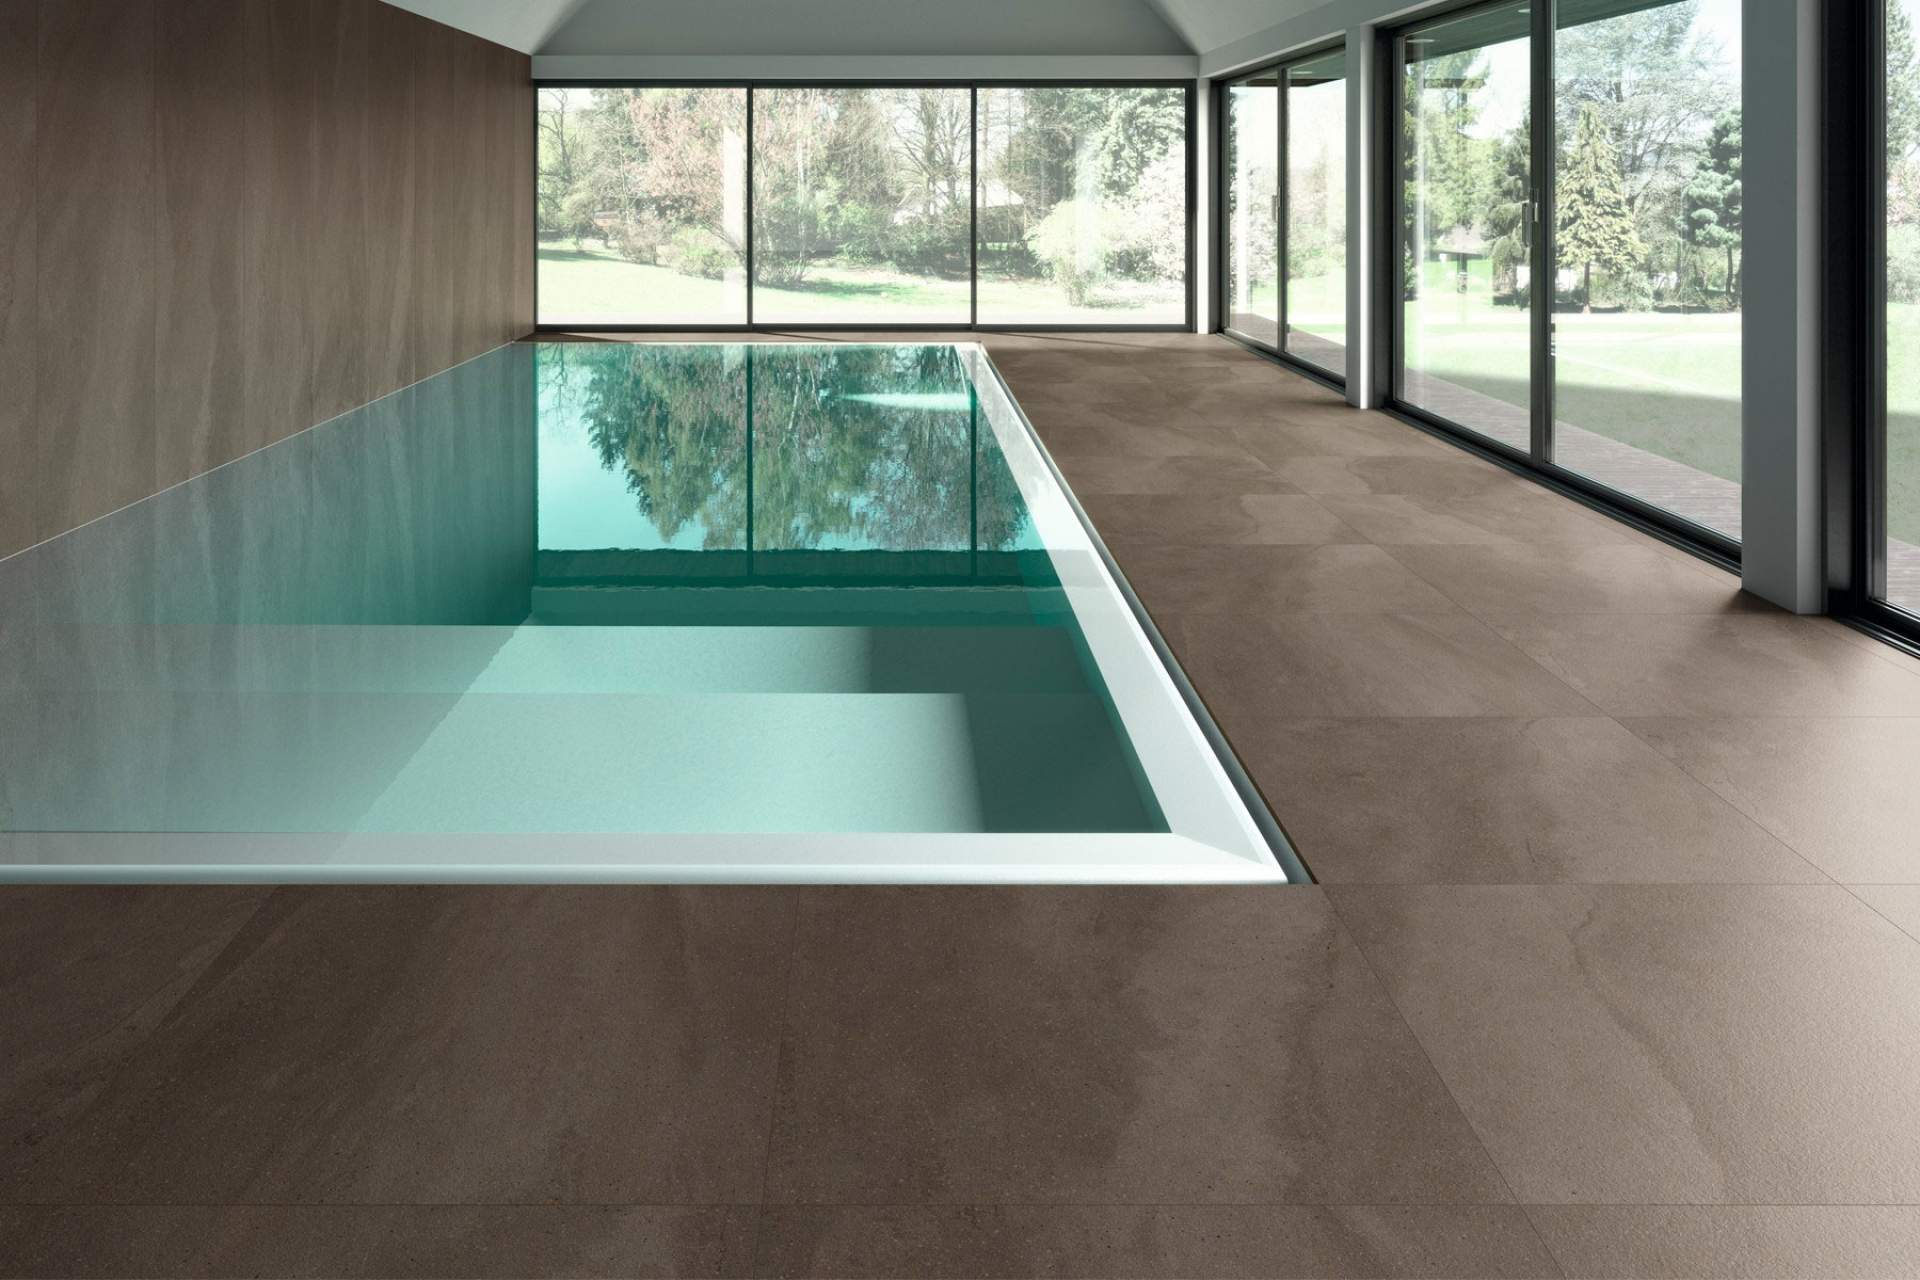 Fusion swimming pool setting using grey natural 100 x 100 tile